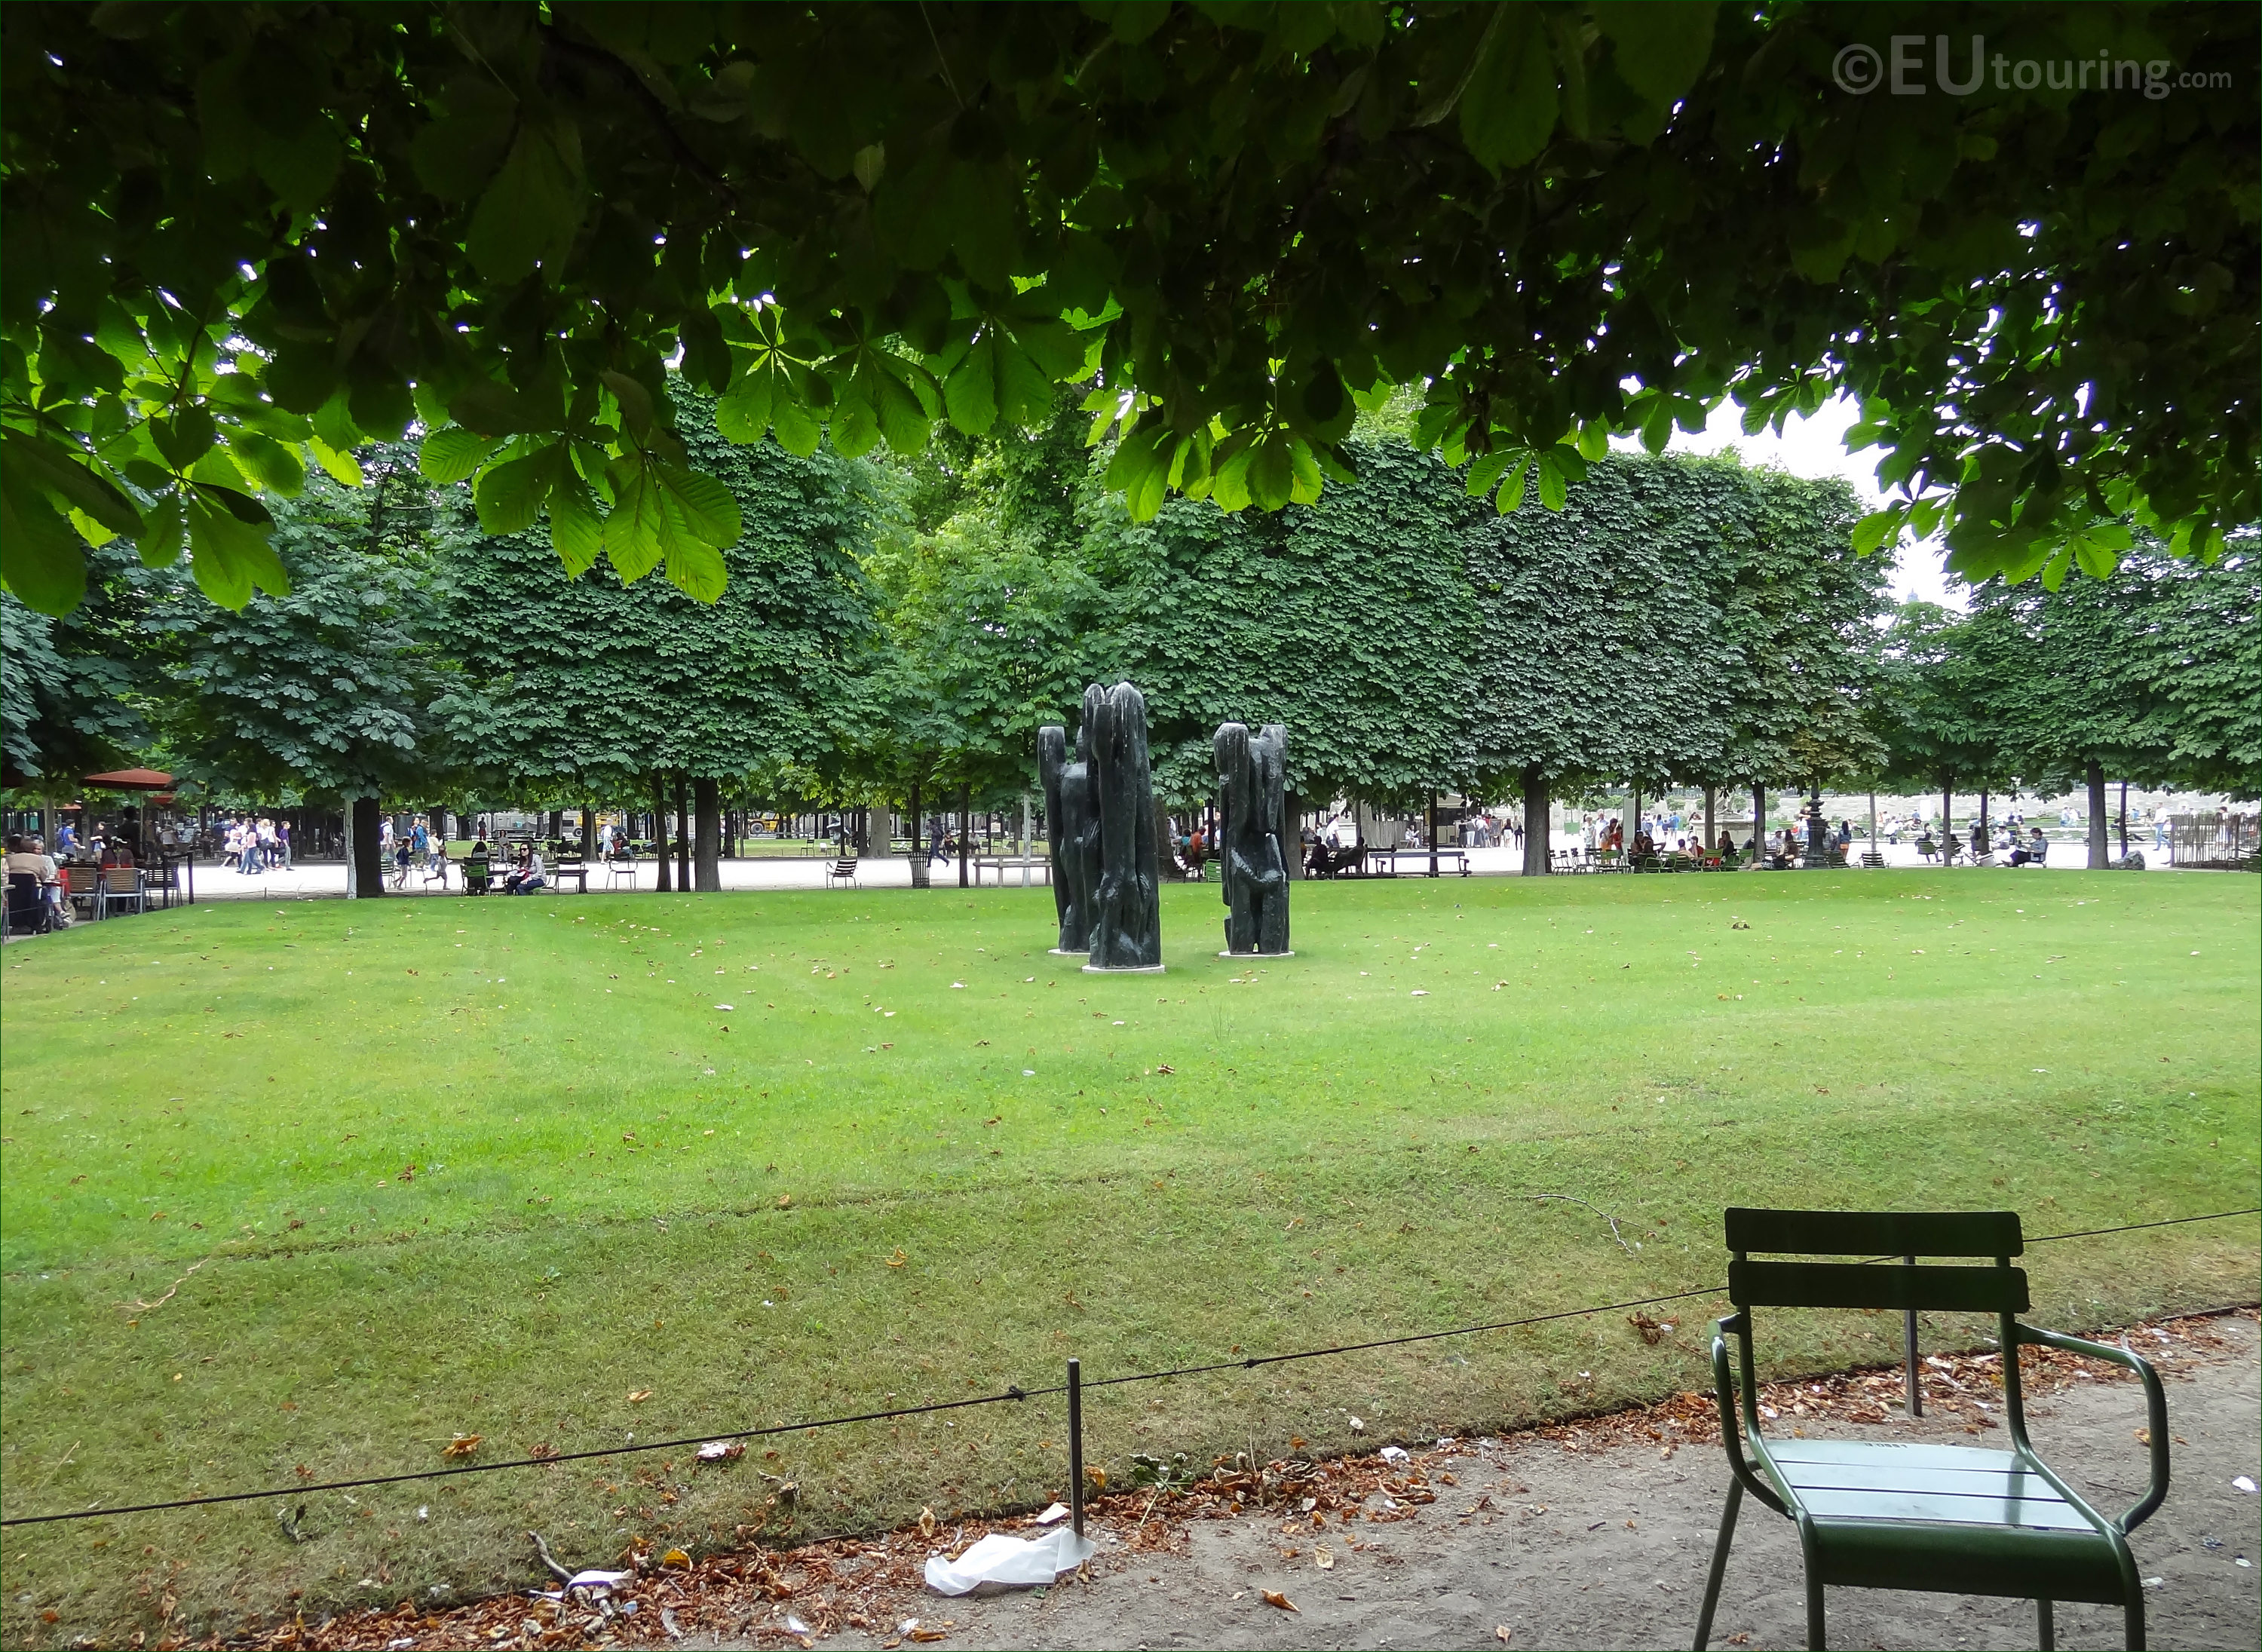 The personnage iii statues in jardin des tuileries page 732 for Jardin couvert lyon